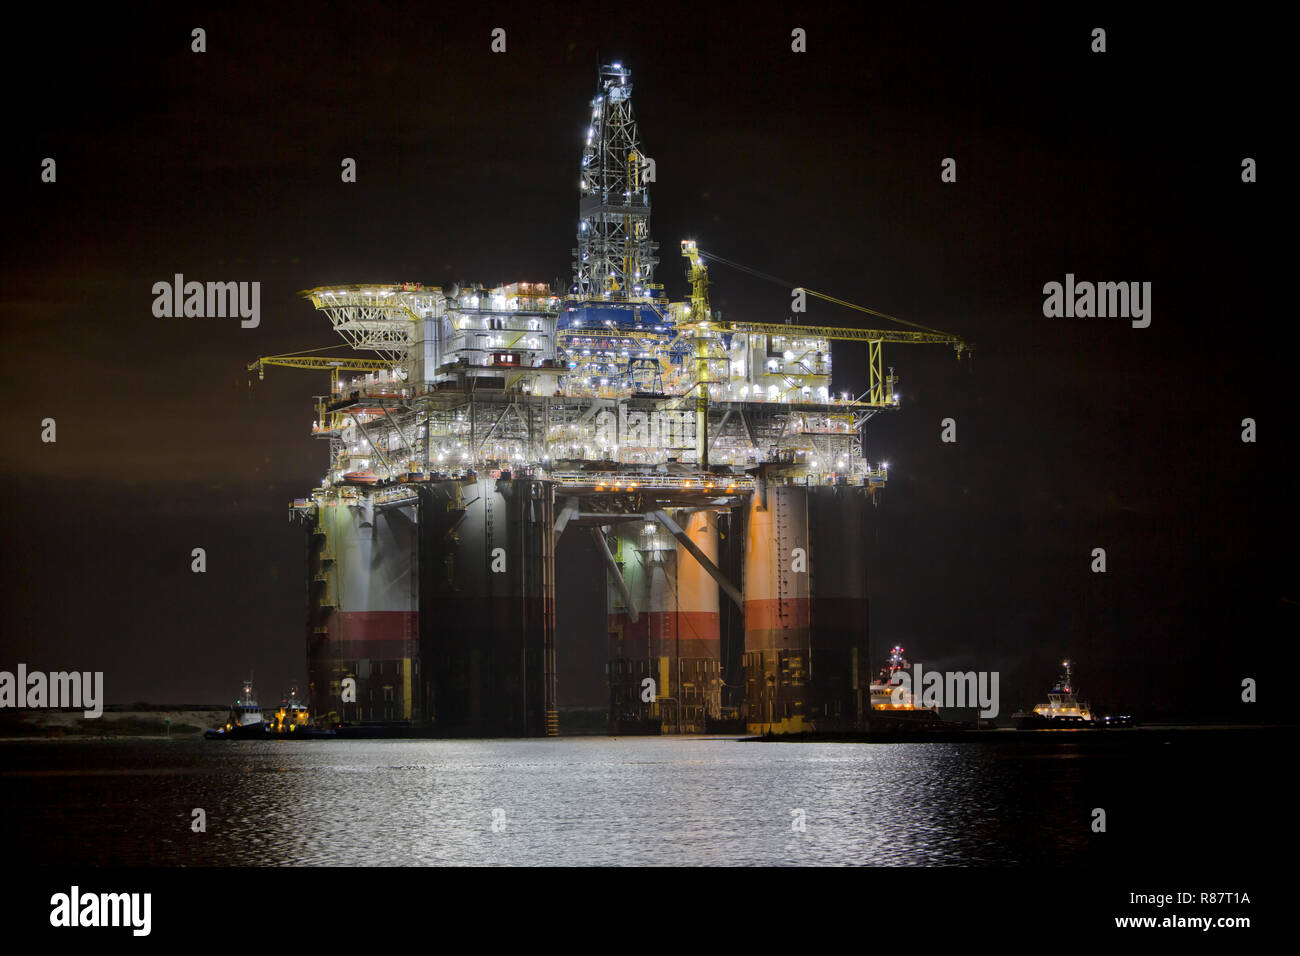 'Big Foot' Chevron's Deep Ocean Platform, tugboats assisting, midnight departure Ingleside Bay,  Kiewit Industries. - Stock Image